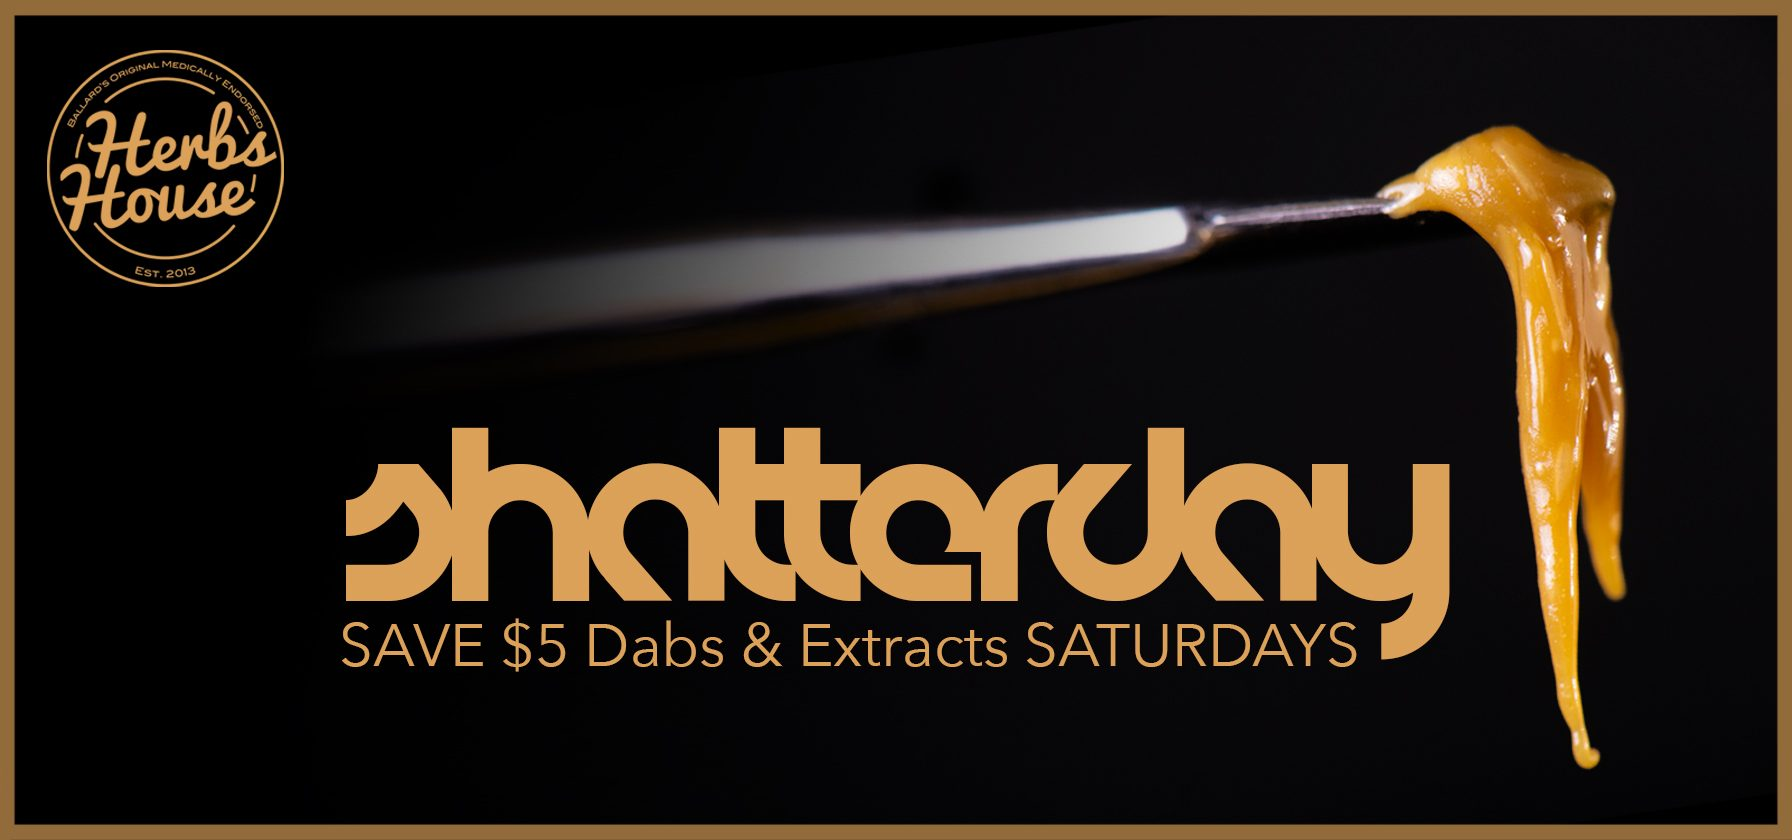 Shatterday Saturday SAVE $5 Dabs & Extracts image